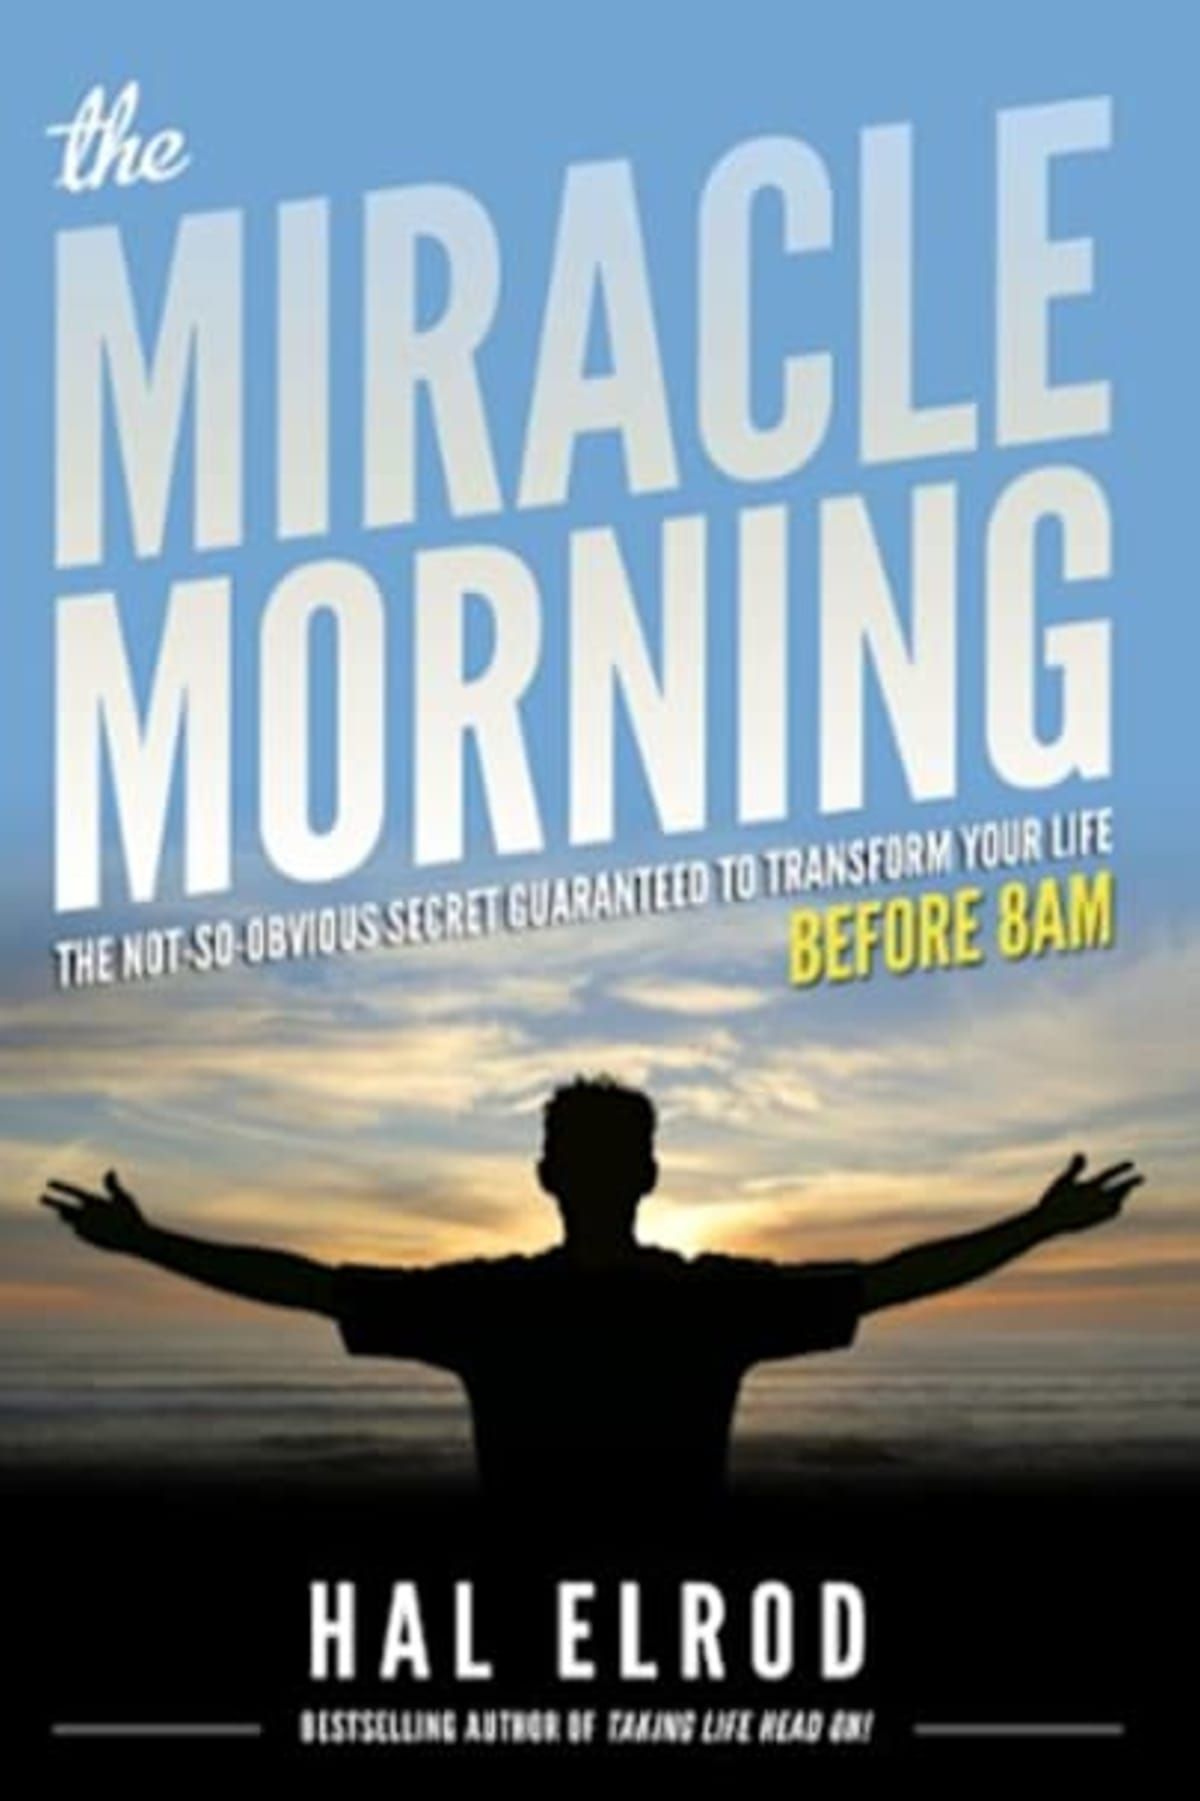 Book cover of The Miracle Morning by Hal Elrod